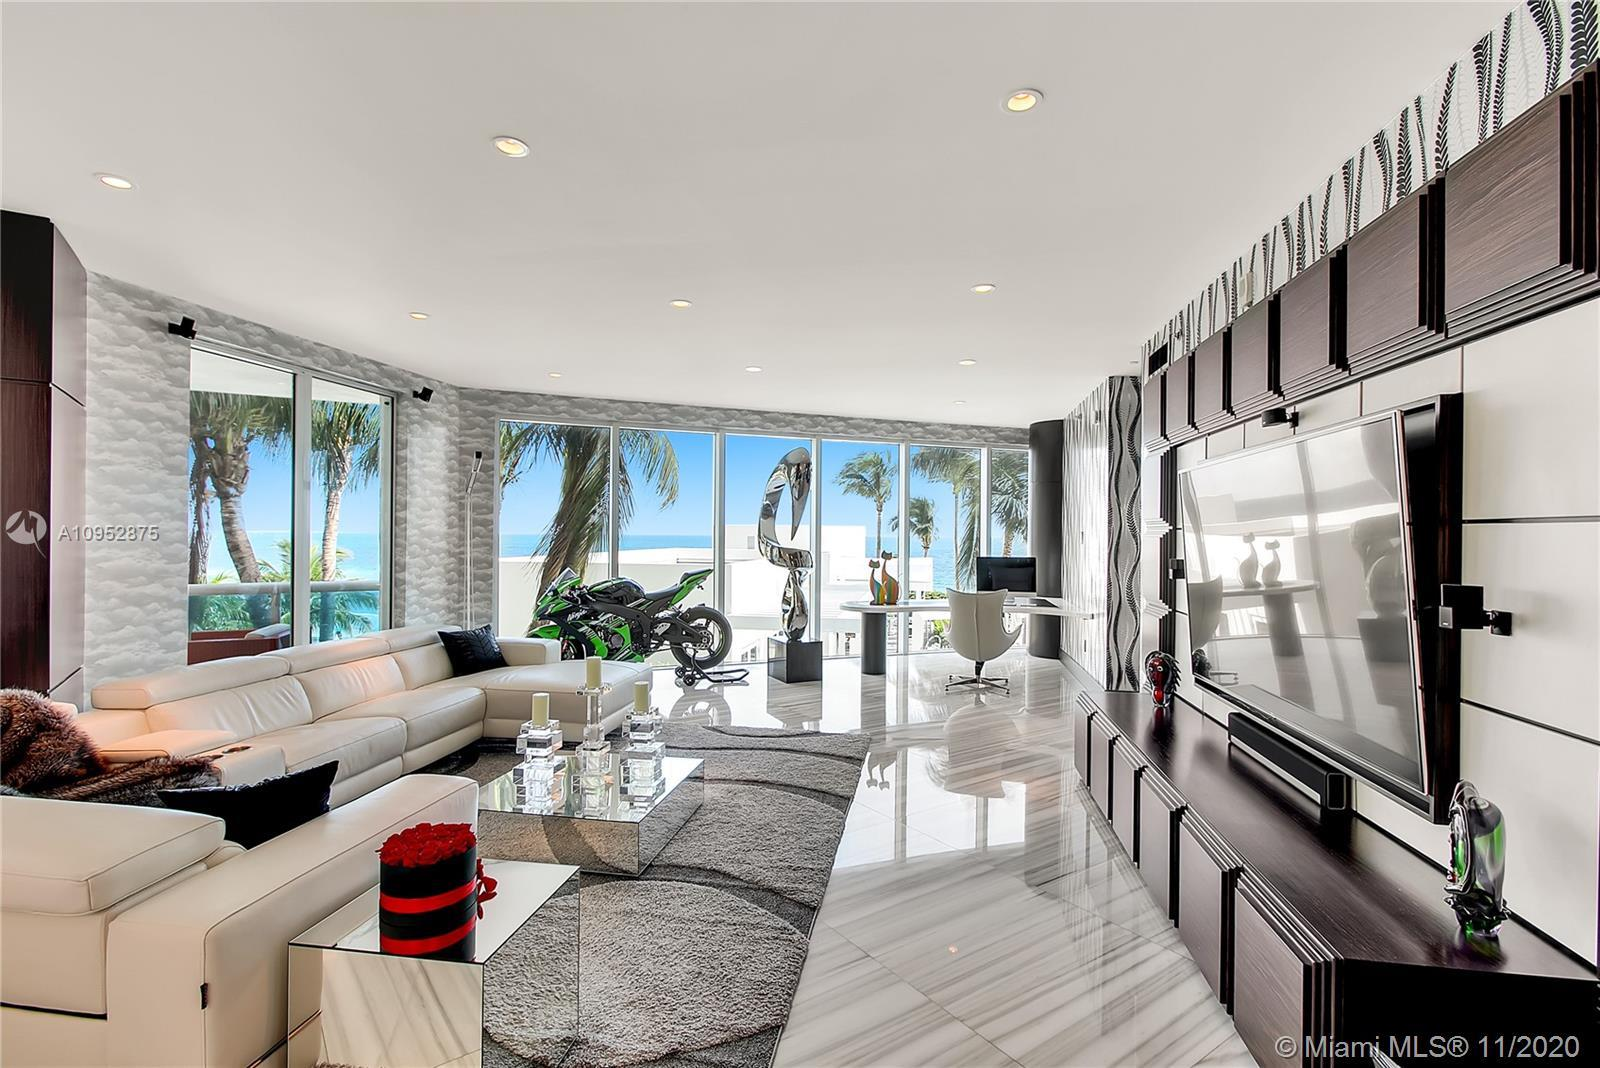 Wow! The Crown Jewel of Luxurious Trump Hollywood! Beach Lanai w/ Private Deck Overlooking the Beach